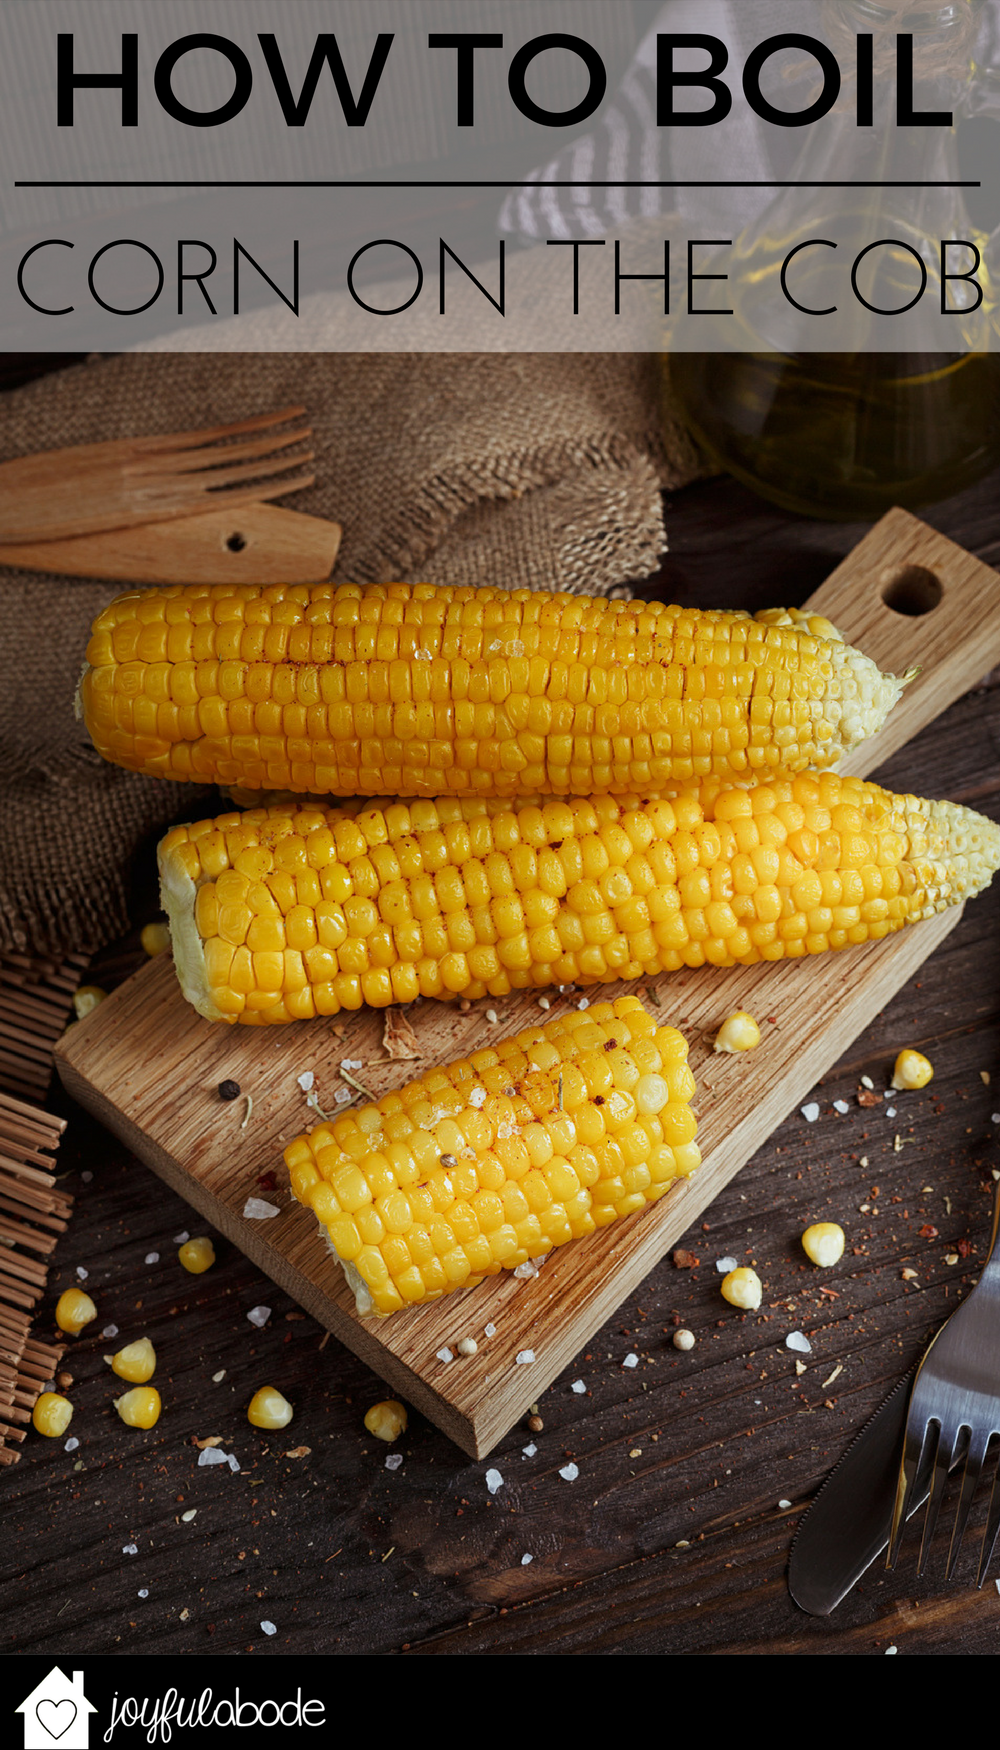 It's hard to remember how to boil corn on the cob. Here's the ultimate cheat sheet for boiling corn on the cob. Pin this so you'll never forget again, and reference before your next summer cookout!